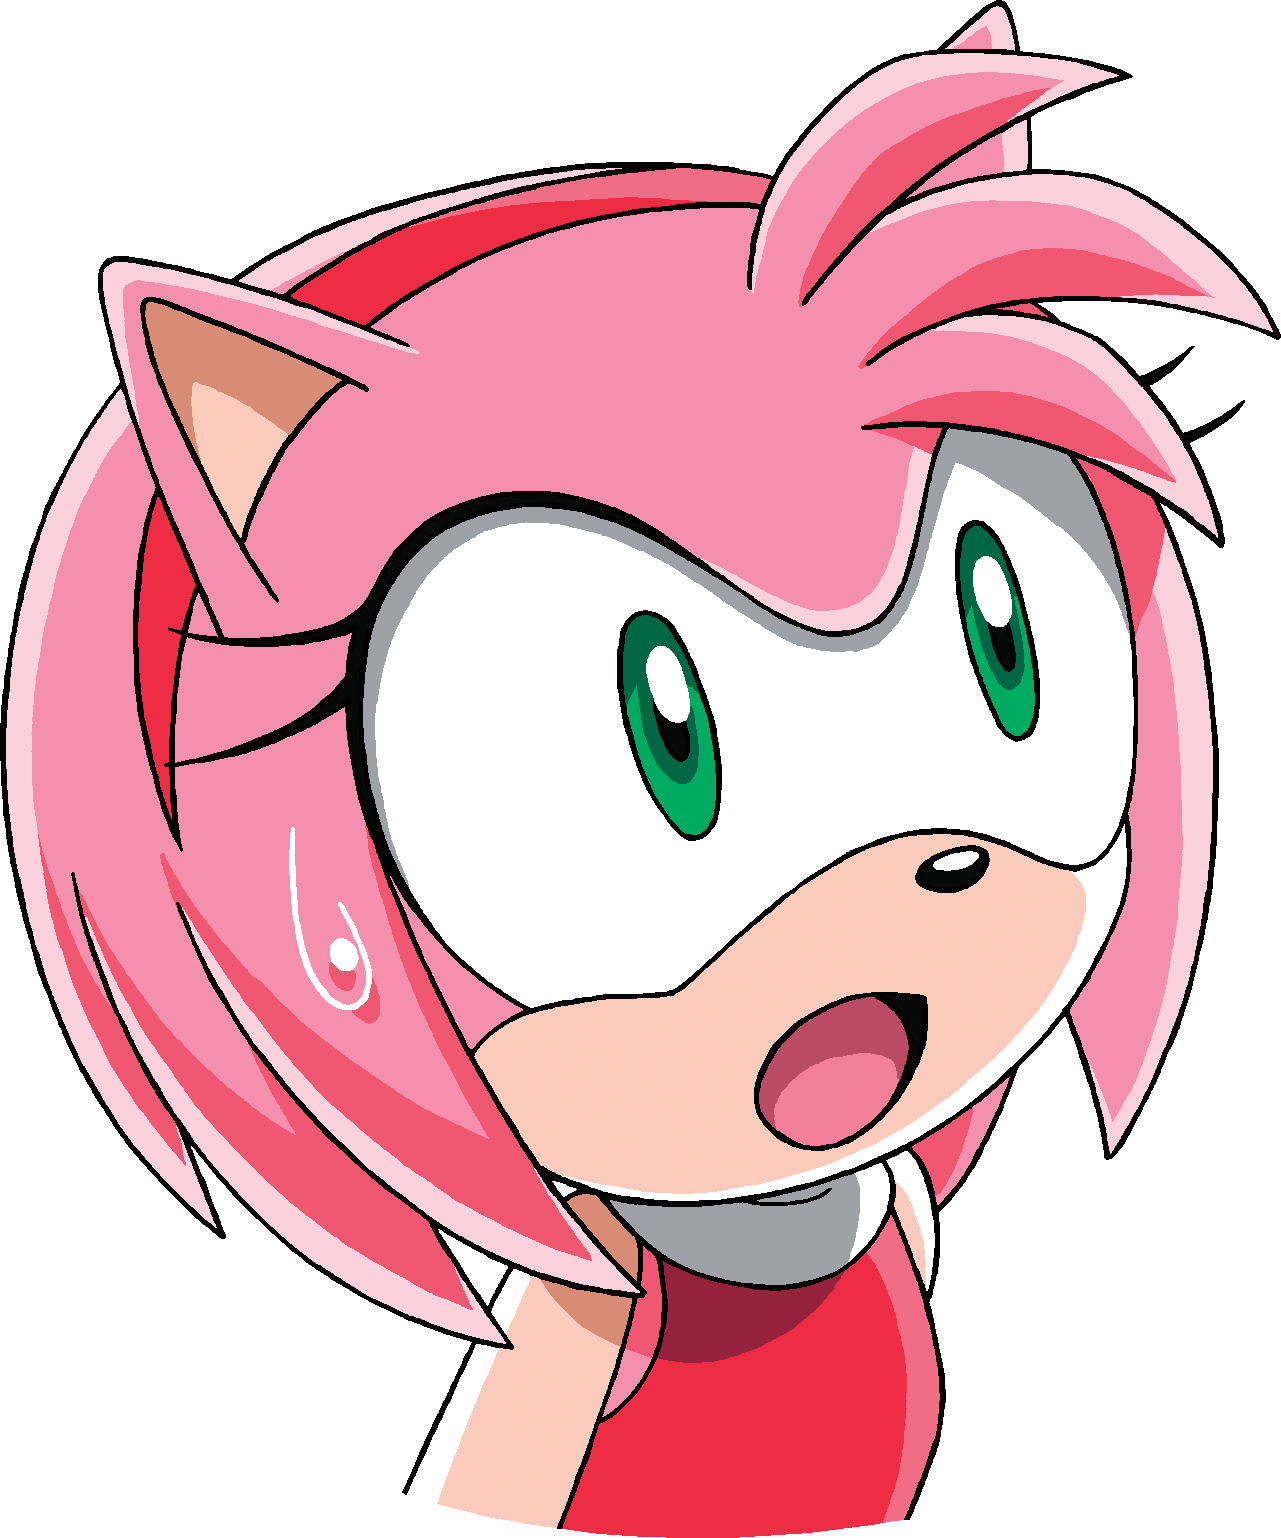 Sonic x surprise amy rose gallery sonic scanf - Amy rose sonic x ...